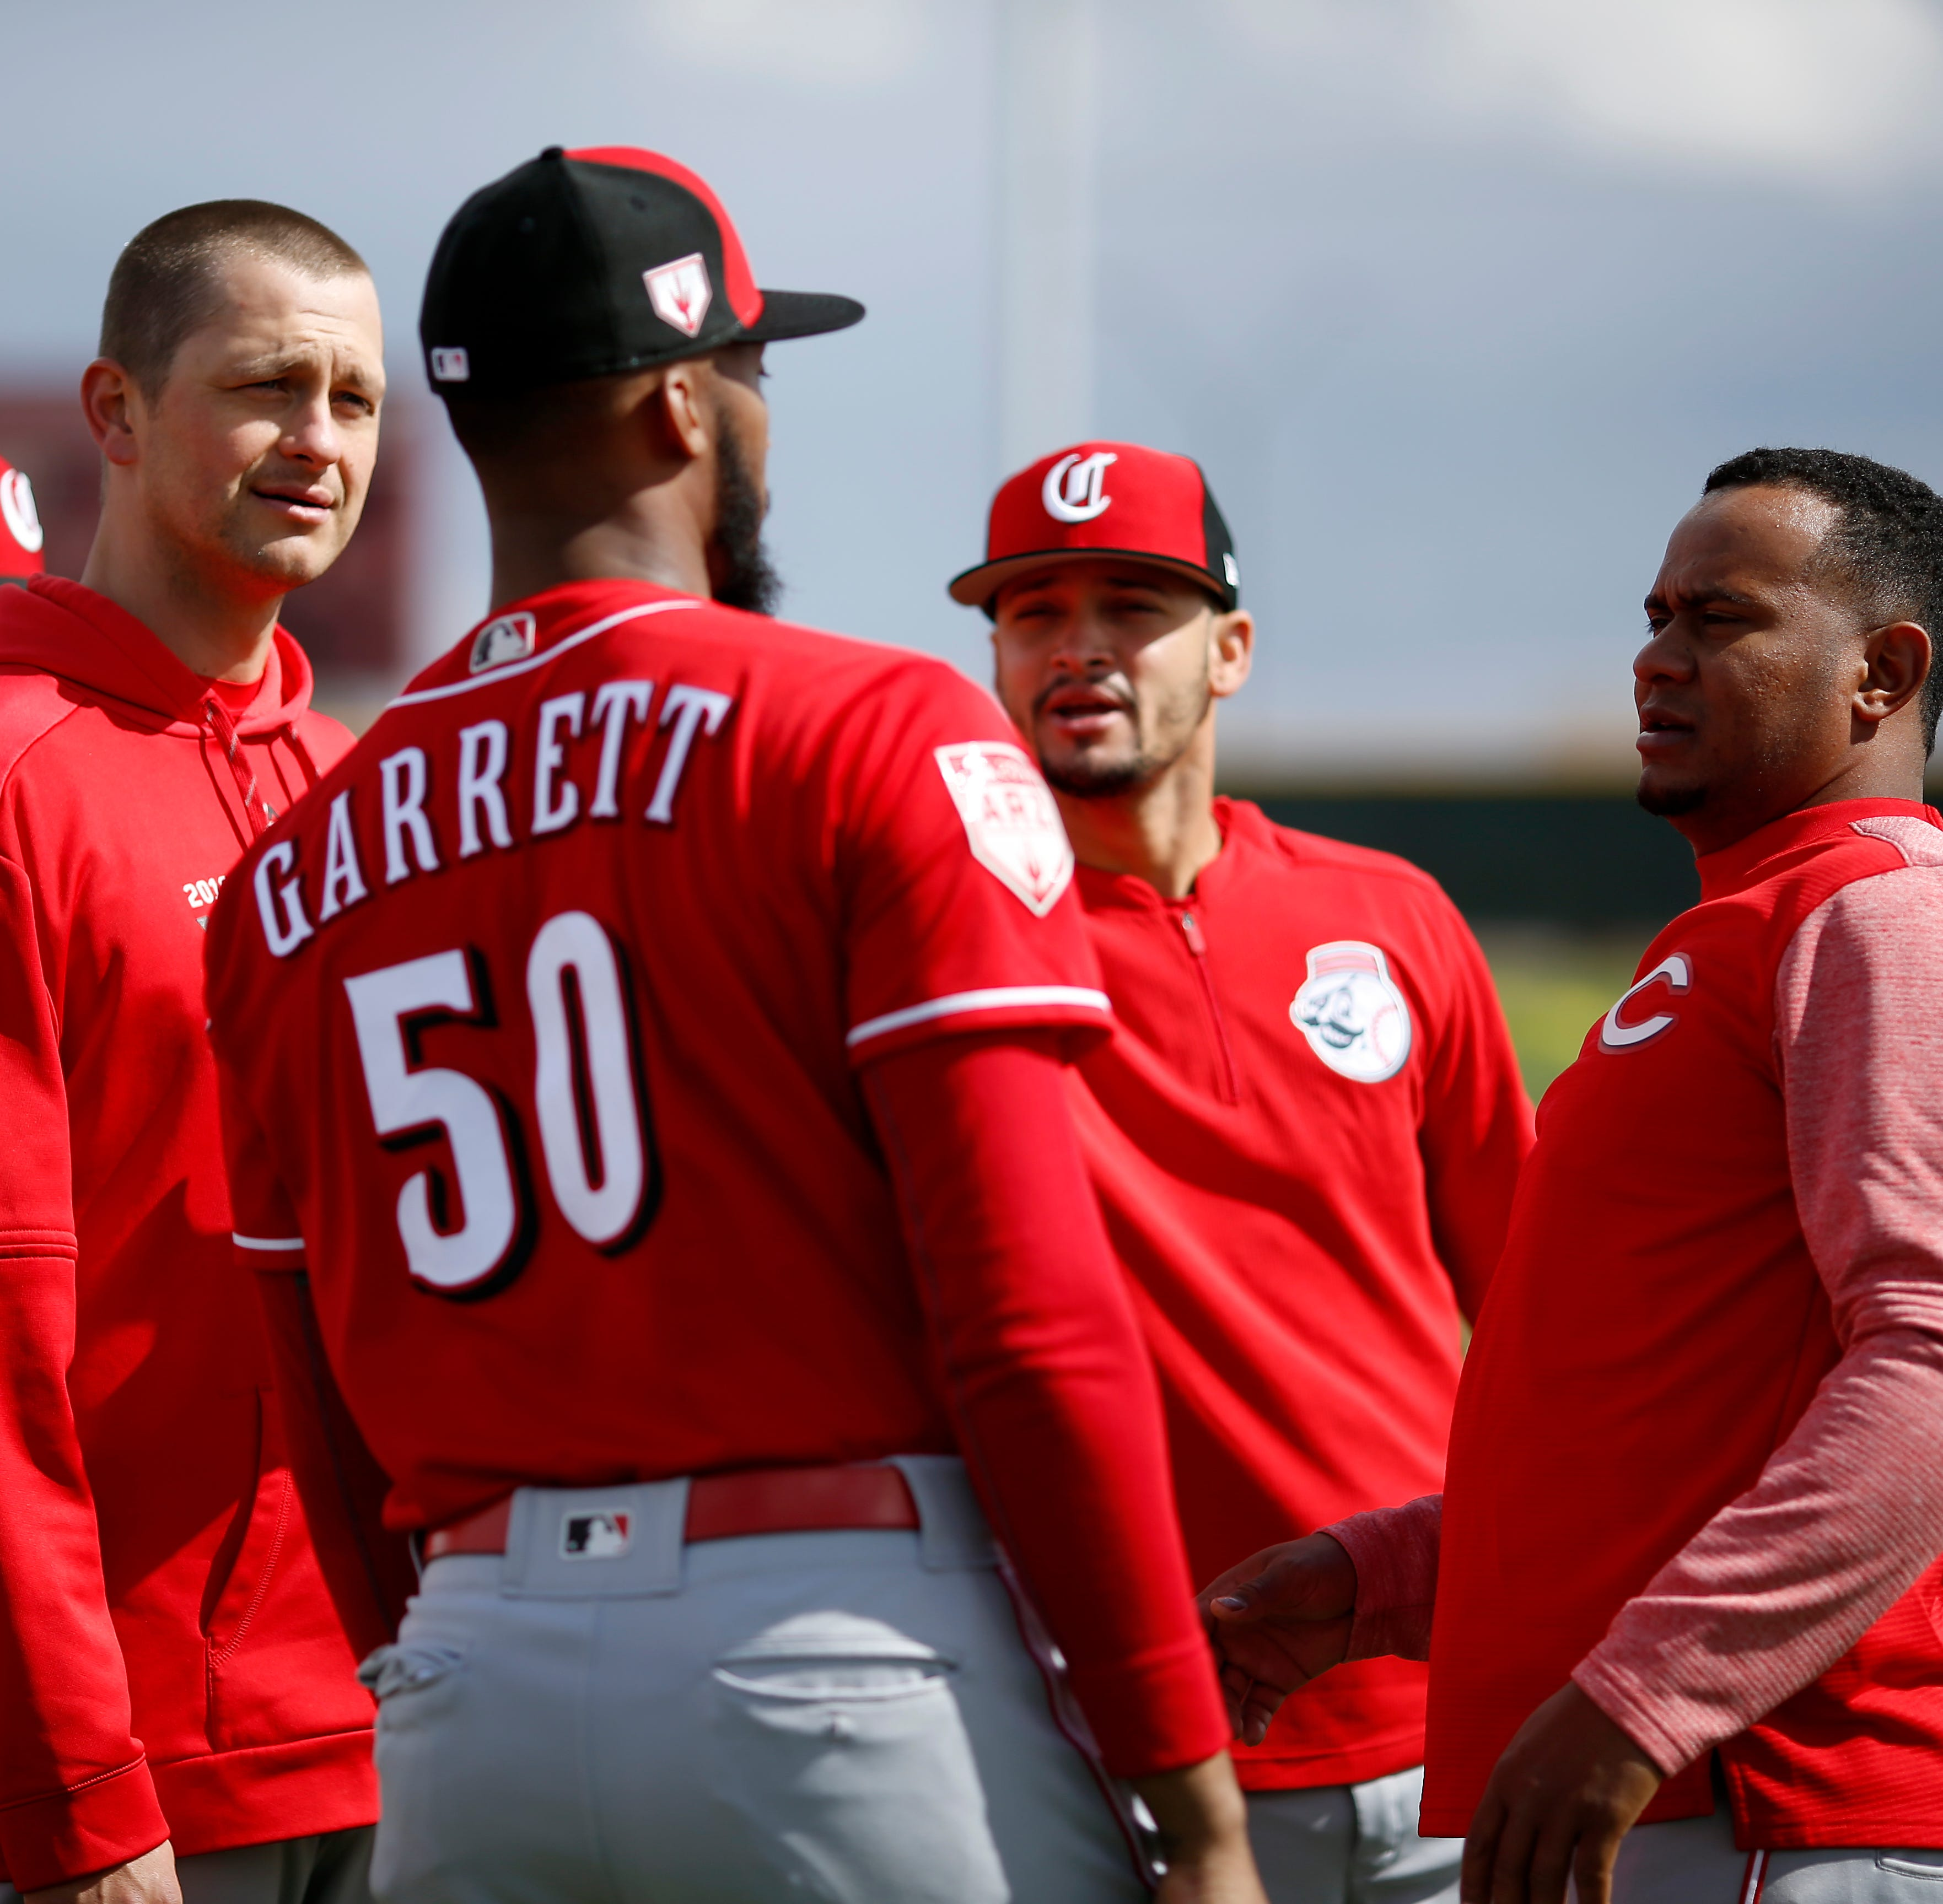 Cincinnati Reds Beat Podcast: What stands out from the first two weeks of spring training